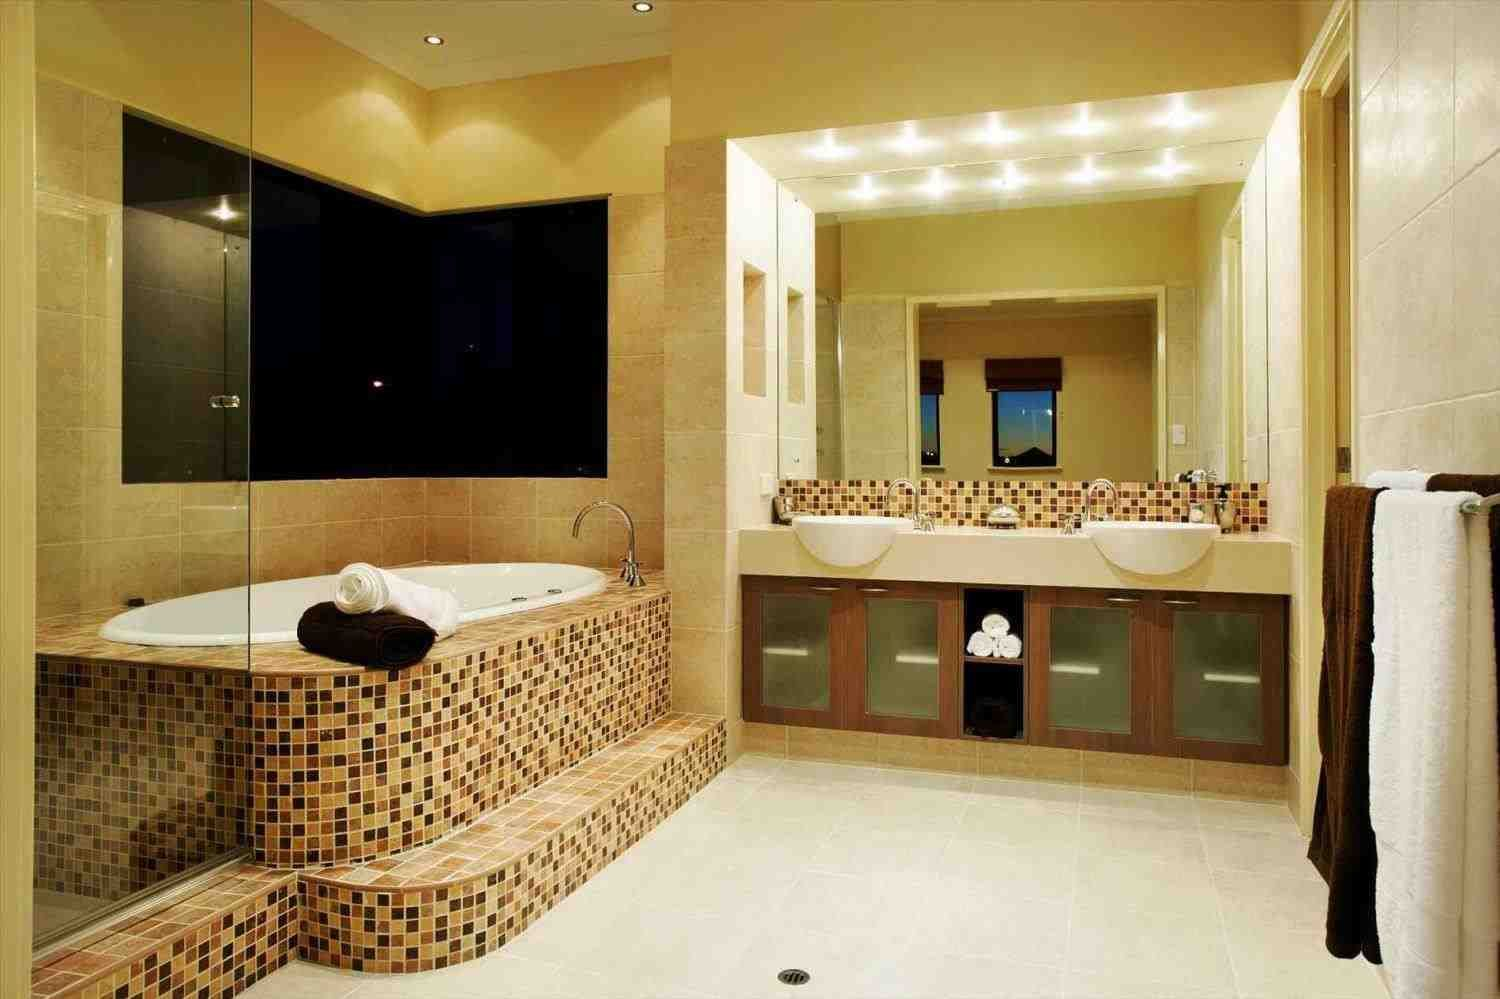 This Rustic Stone Bathroom Designs  Small 12 Bathroom Ideas Entrancing Stone Bathroom Design Review